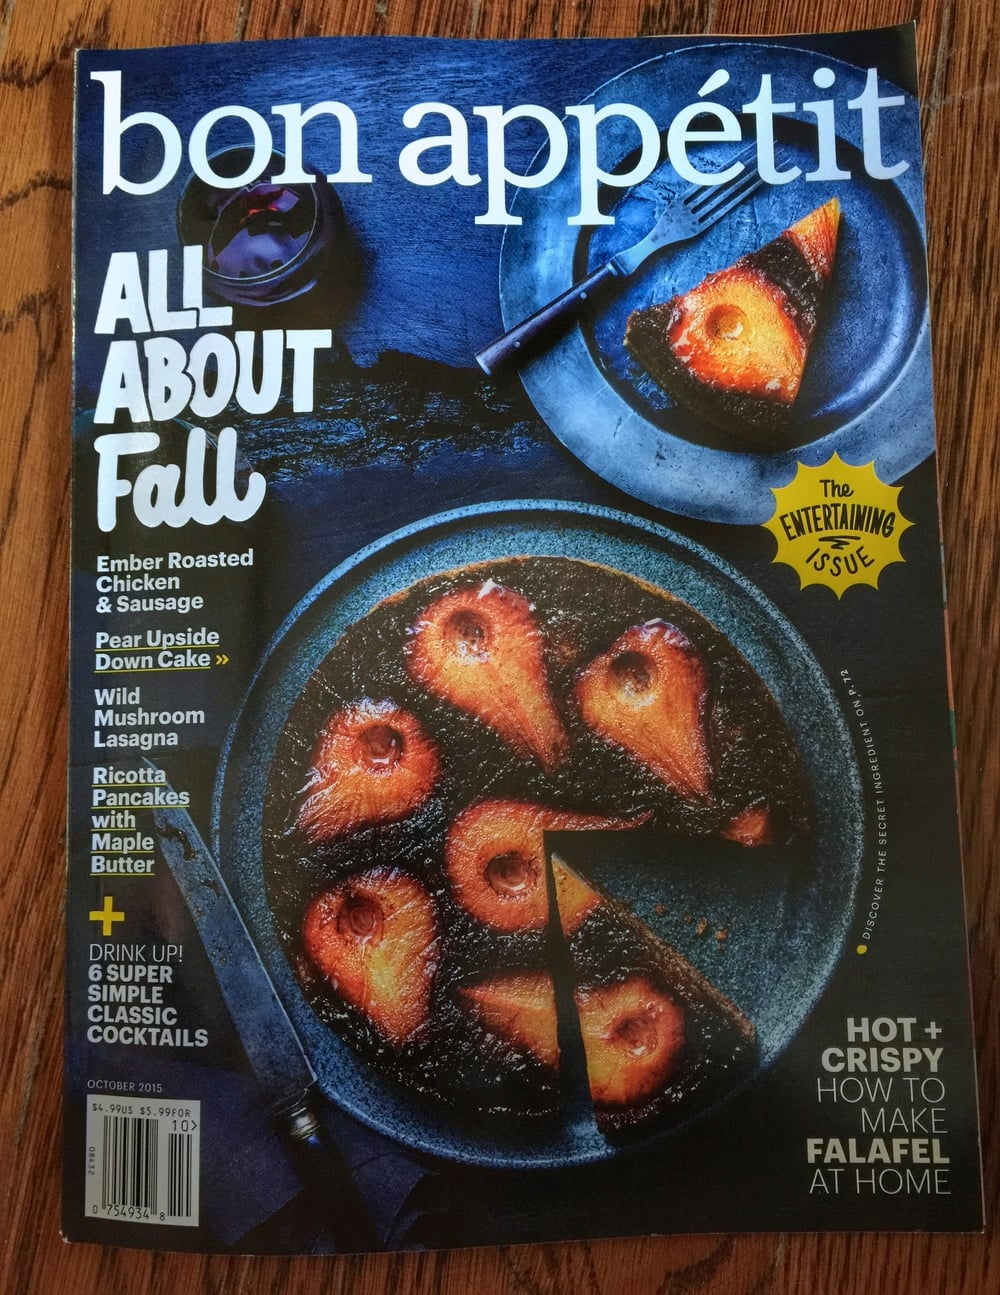 Pancakes are a breakfast staple, and this recipe adds a delectable twist to a Sunday classic. Children and adults alike will gobble them up with delight. They are softer than your typical pancake, so I recommend them for 8+ months (earlier depending on the child). This is an adapted recipe from a recipe found in bon appétit magazine.